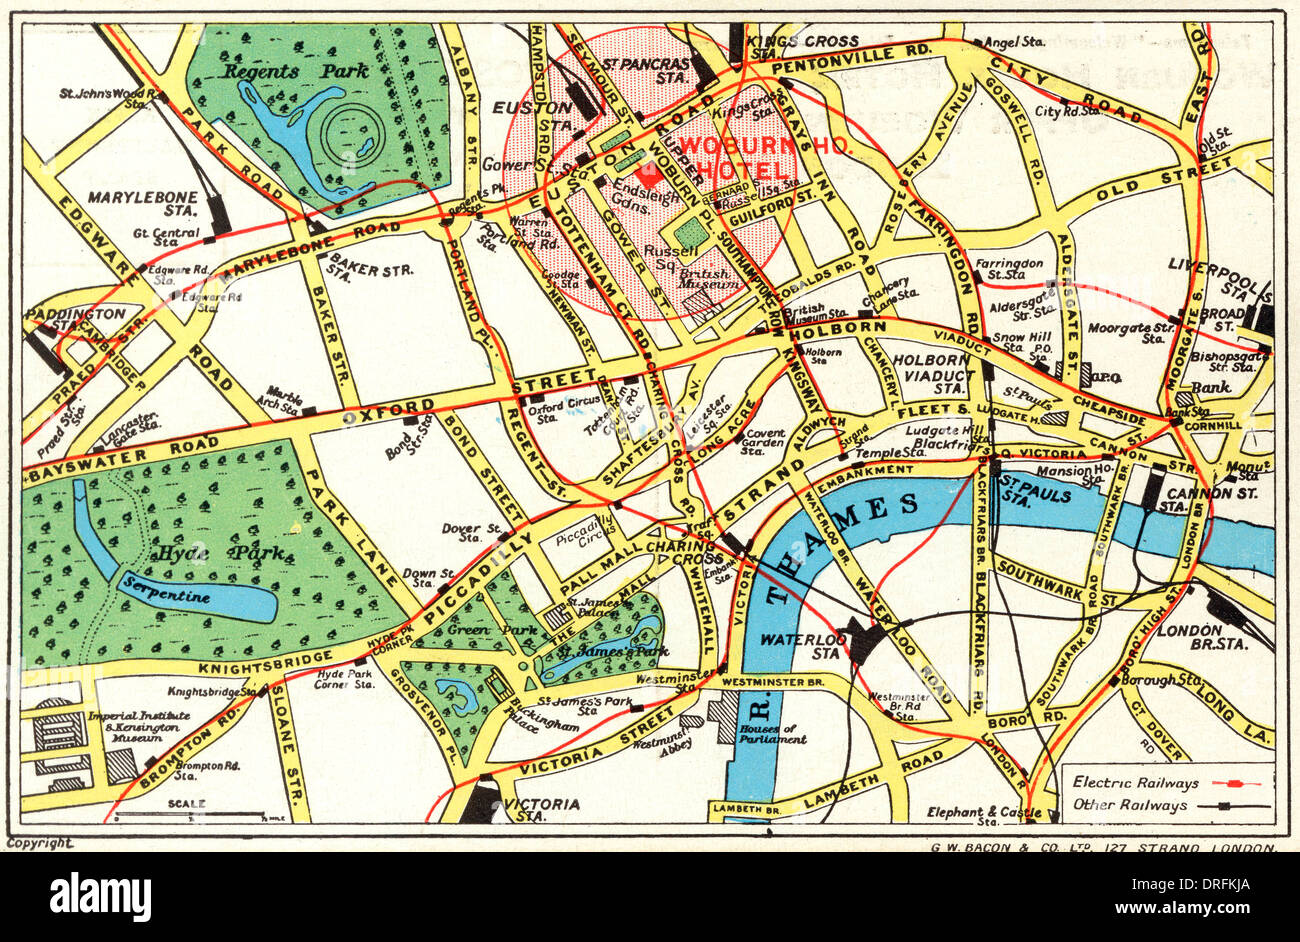 Map of Central London with Woburn House Hotel marked - Stock Image